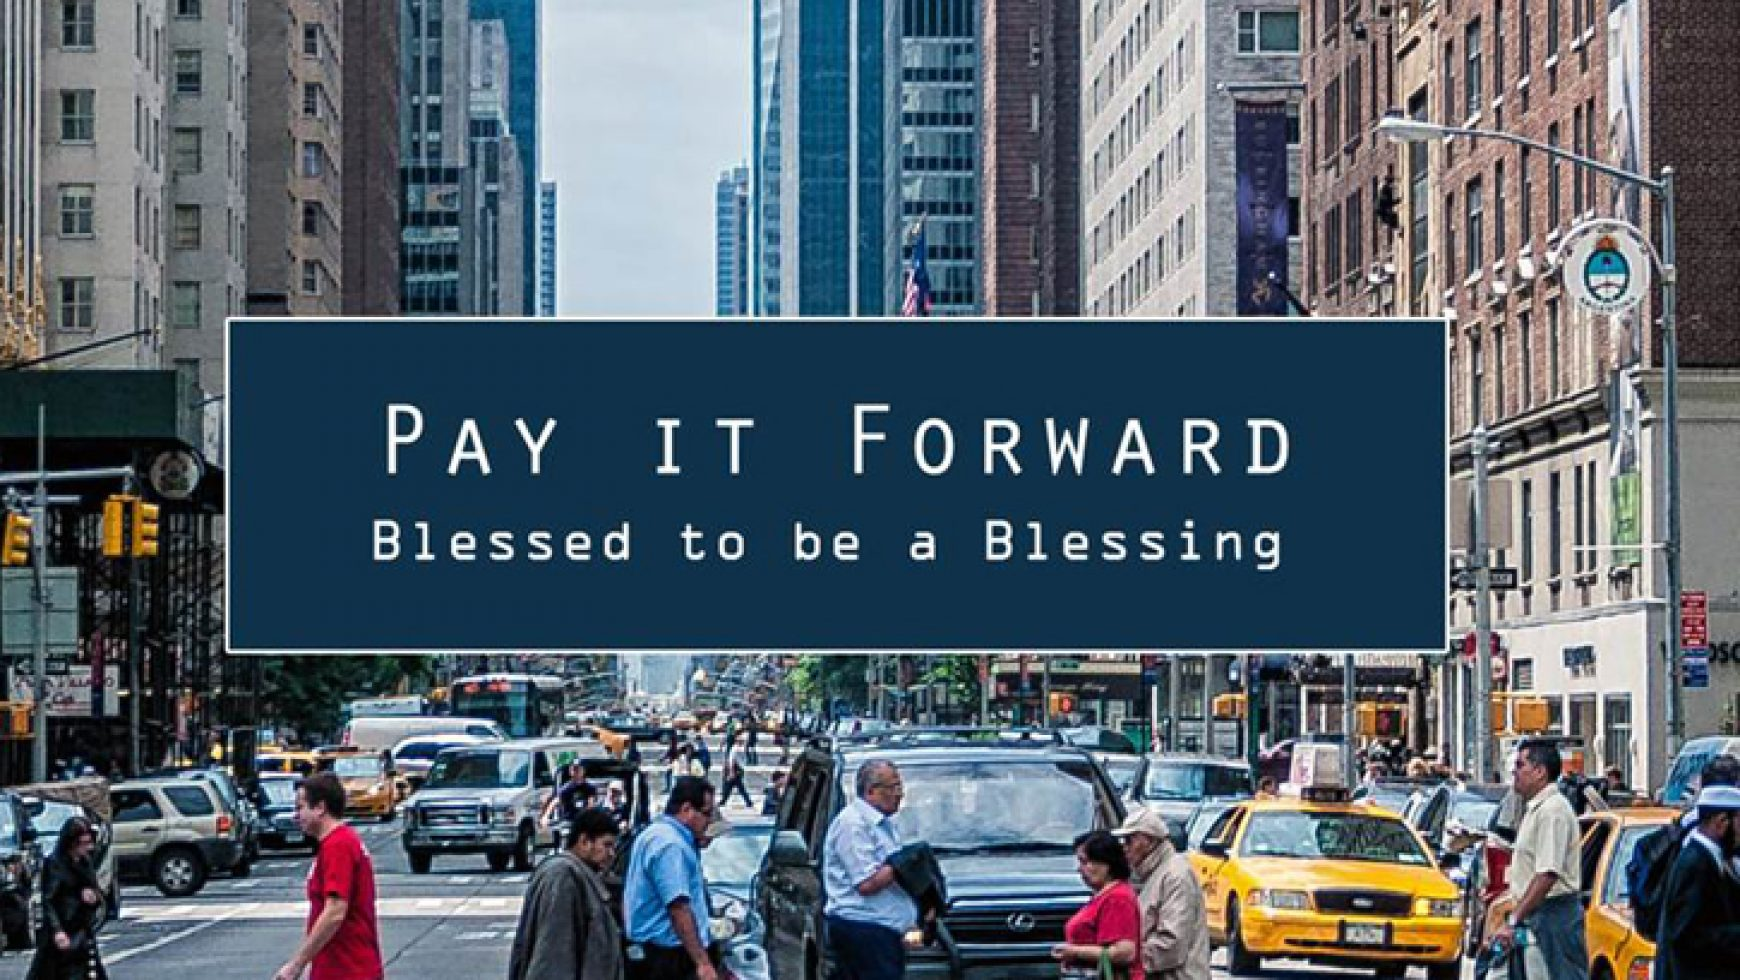 Pay it Forward: Blessed to be a Blessing